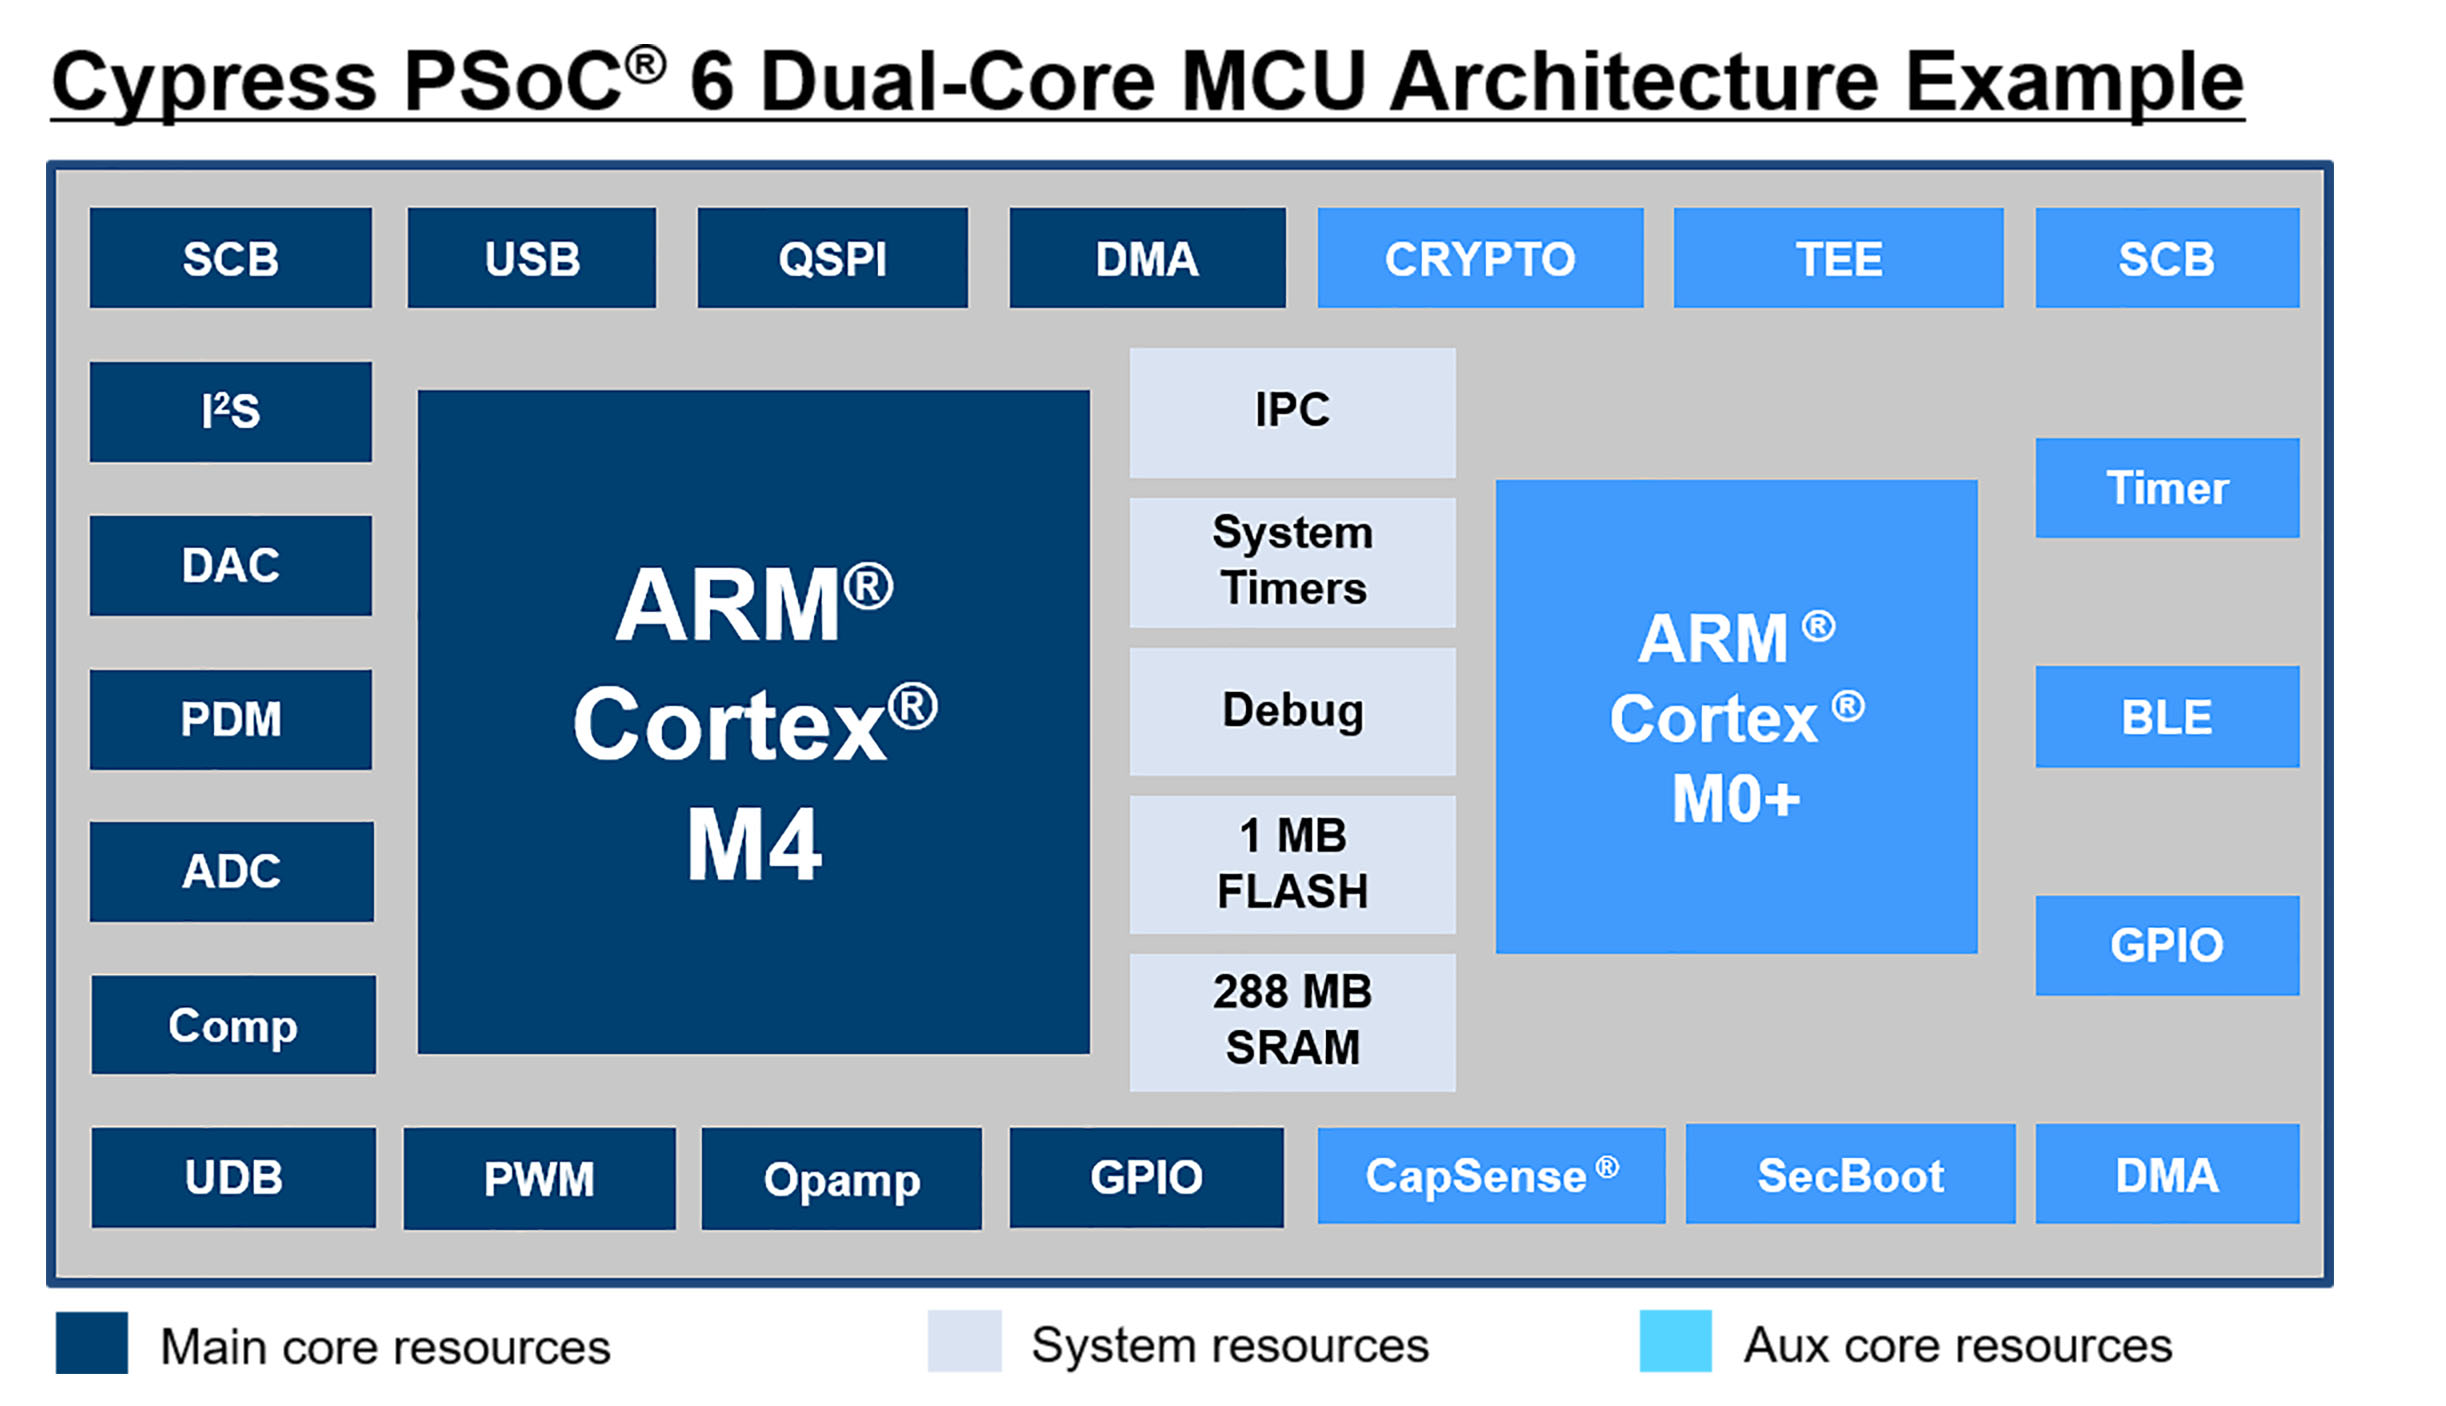 PSoC 6 is the industry's most flexible MCU architecture for IoT.